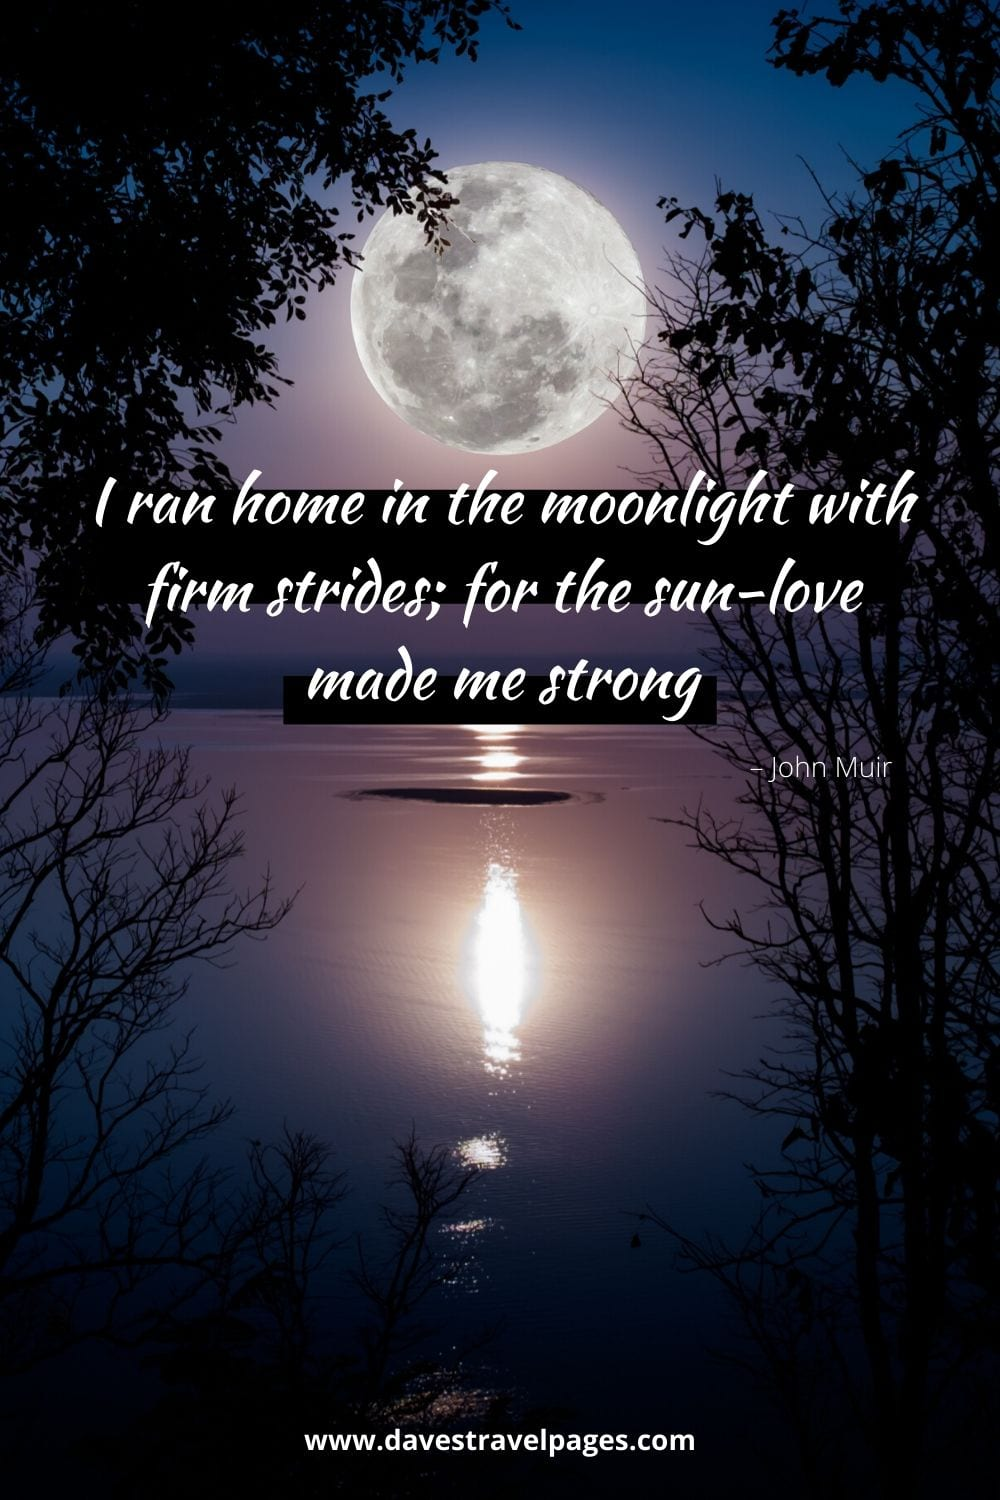 """""""I ran home in the moonlight with firm strides; for the sun-love made me strong."""" – John Muir Quote"""